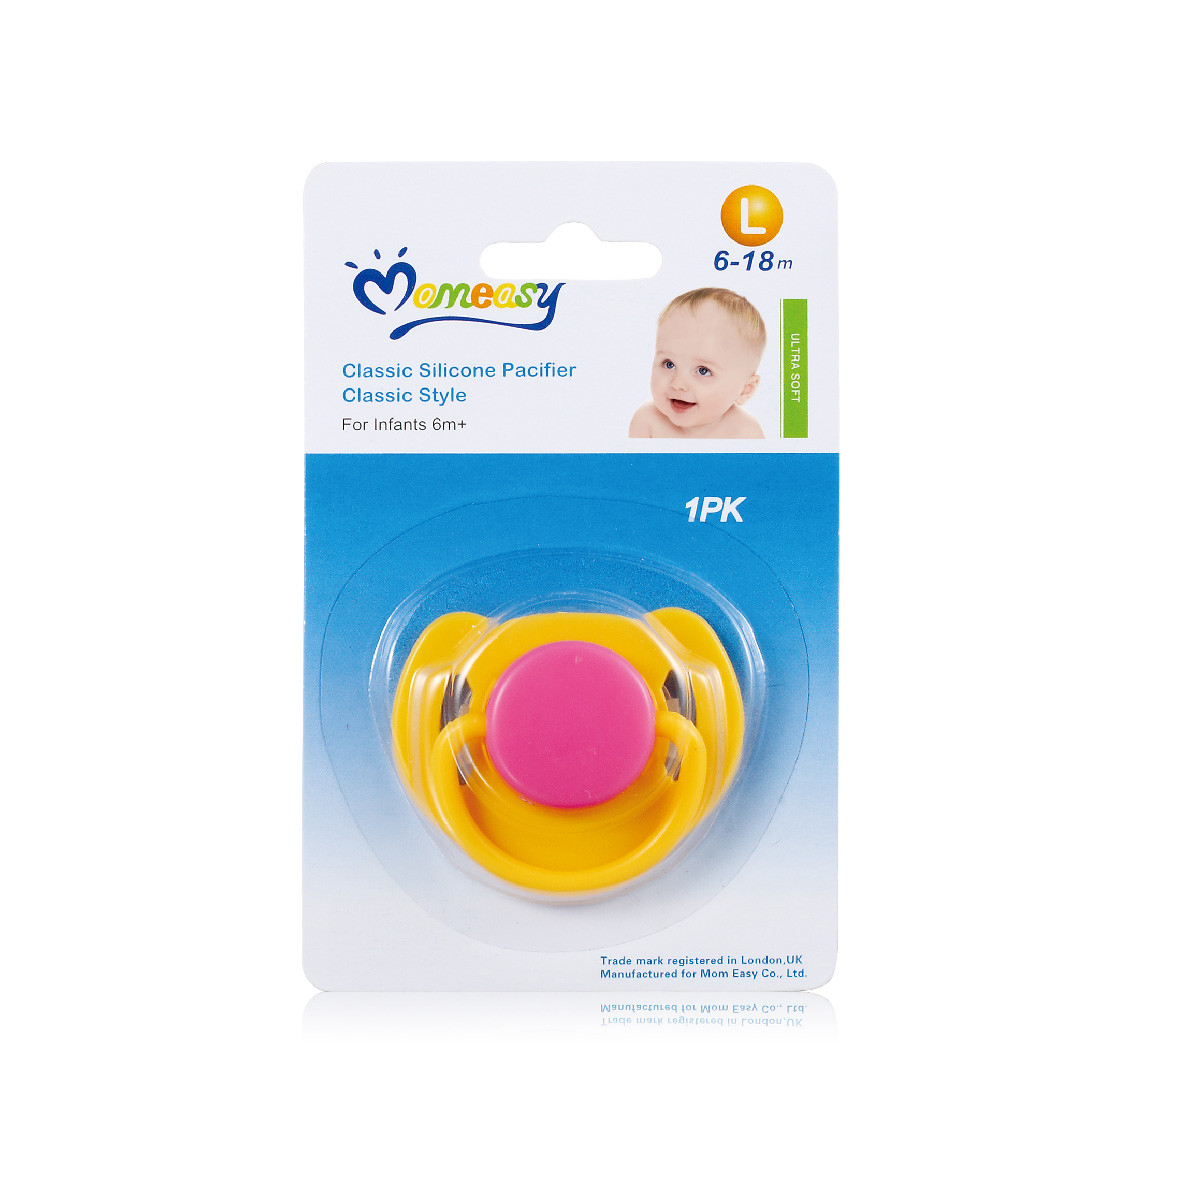 Momeasy Classic Silicon Pacifier Classic Style (48310) .